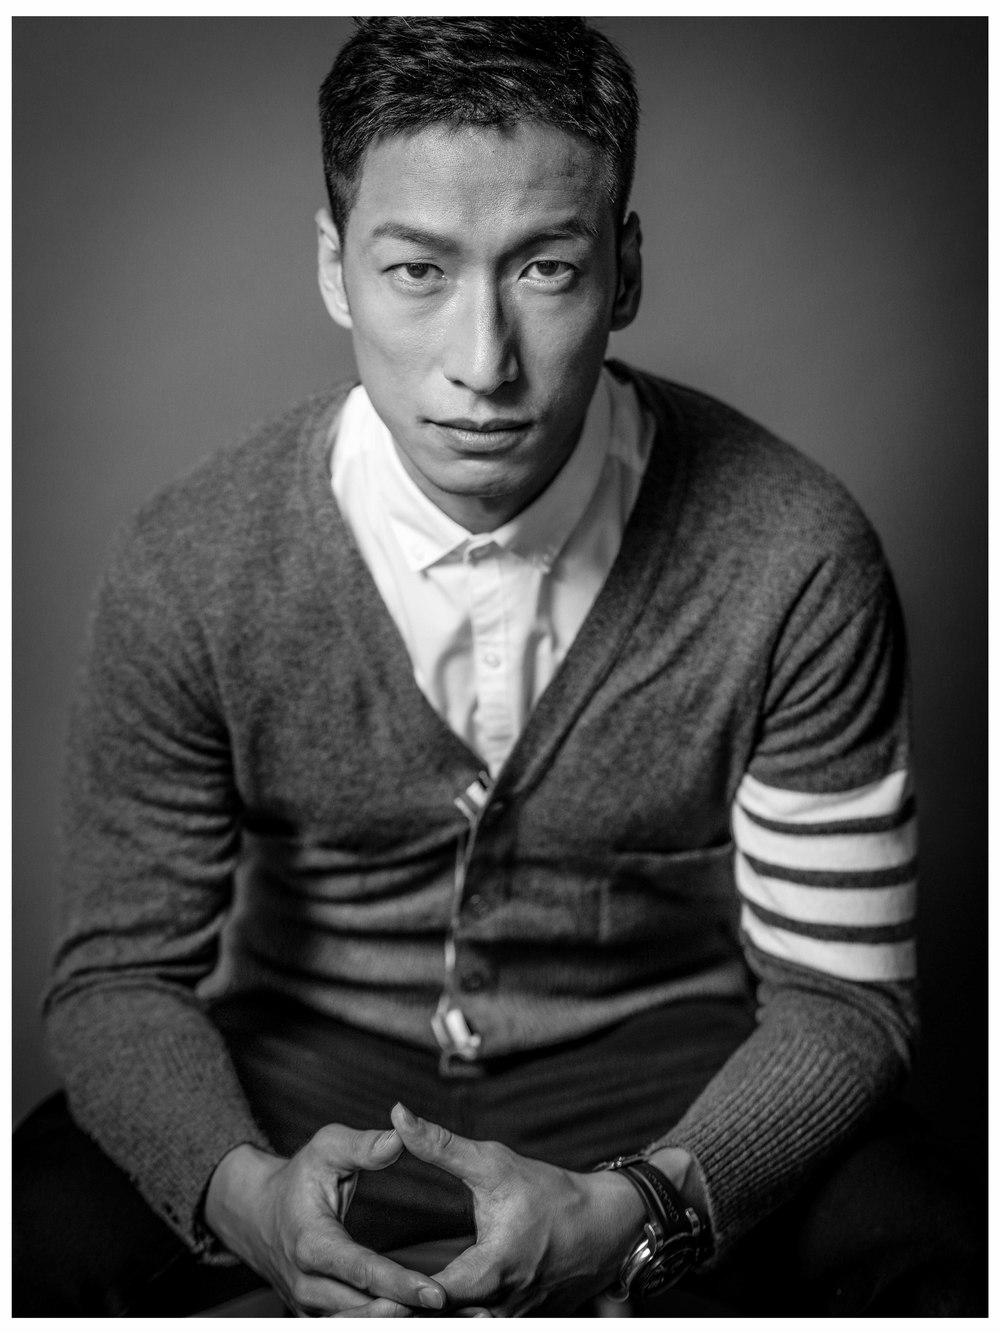 Portrait of Jackal Wong, Hairstylist at La Biosthetique Paris (HK)